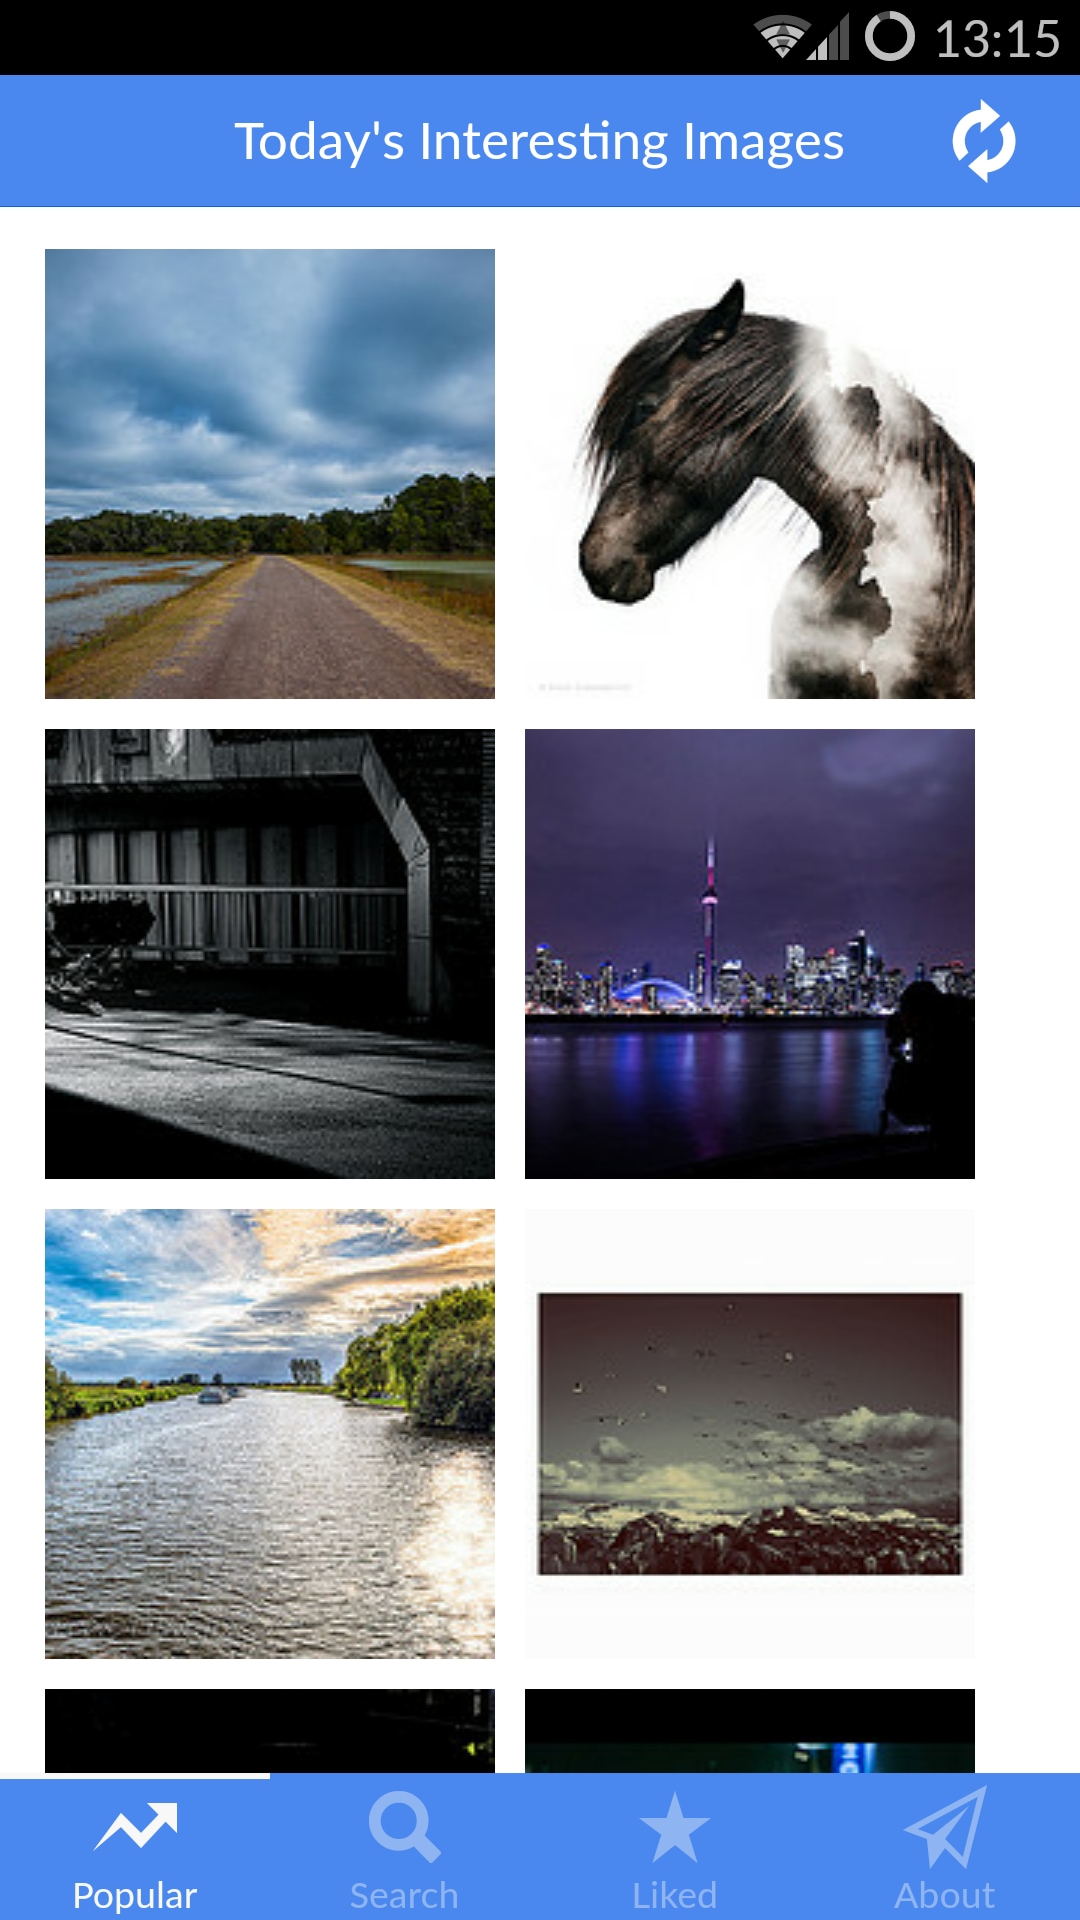 Image Search (1)